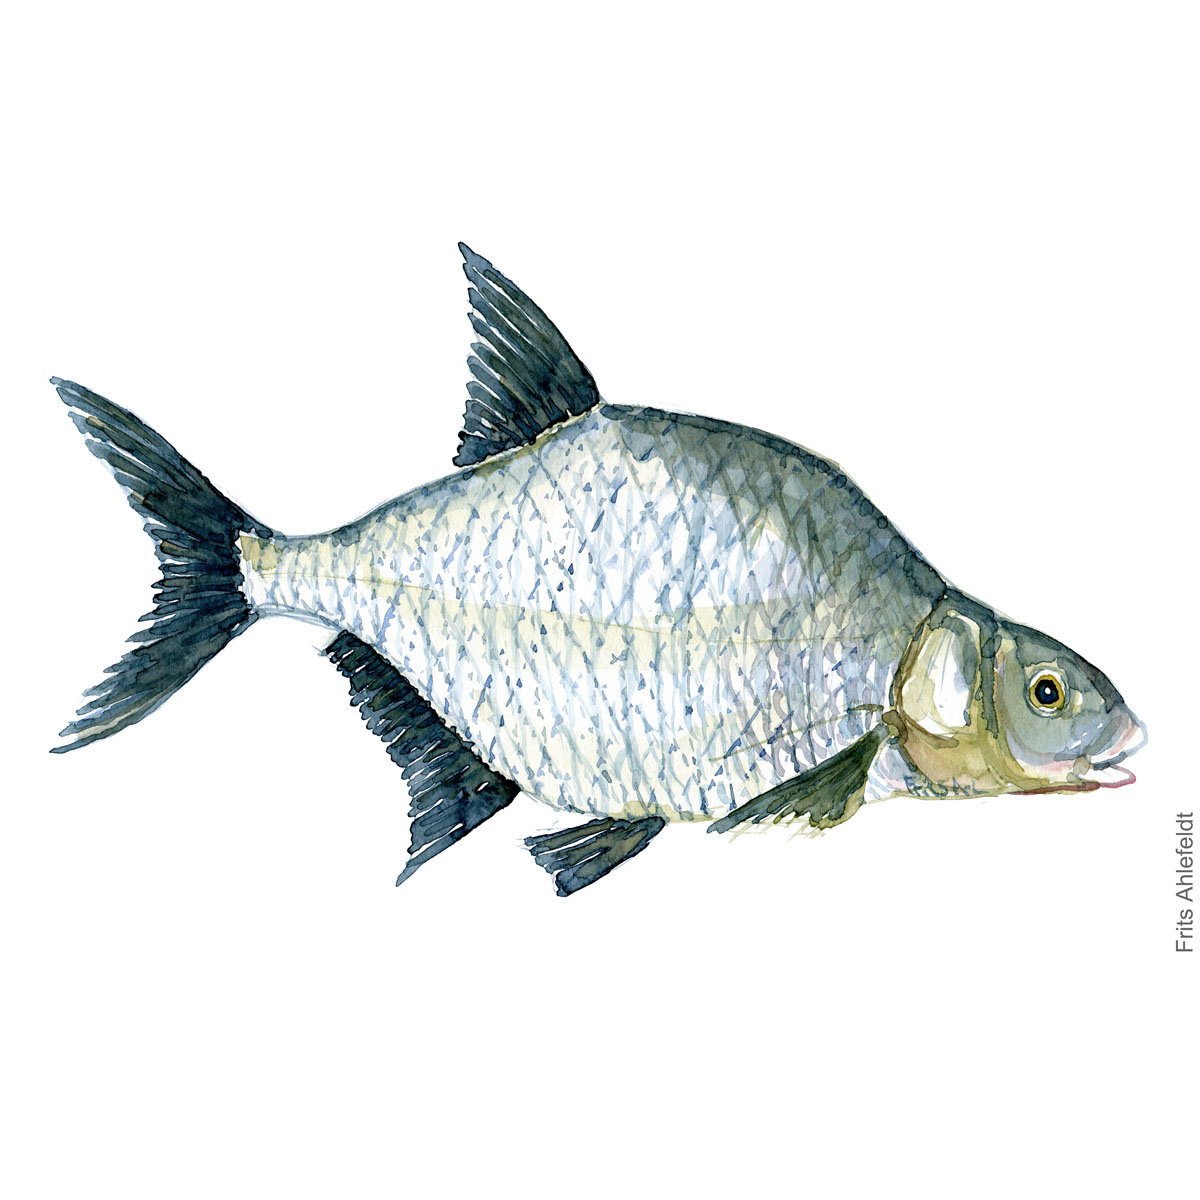 Illustration of Common bream. Brasen. Freshwater fish watercolour handmade by Frits Ahlefeldt